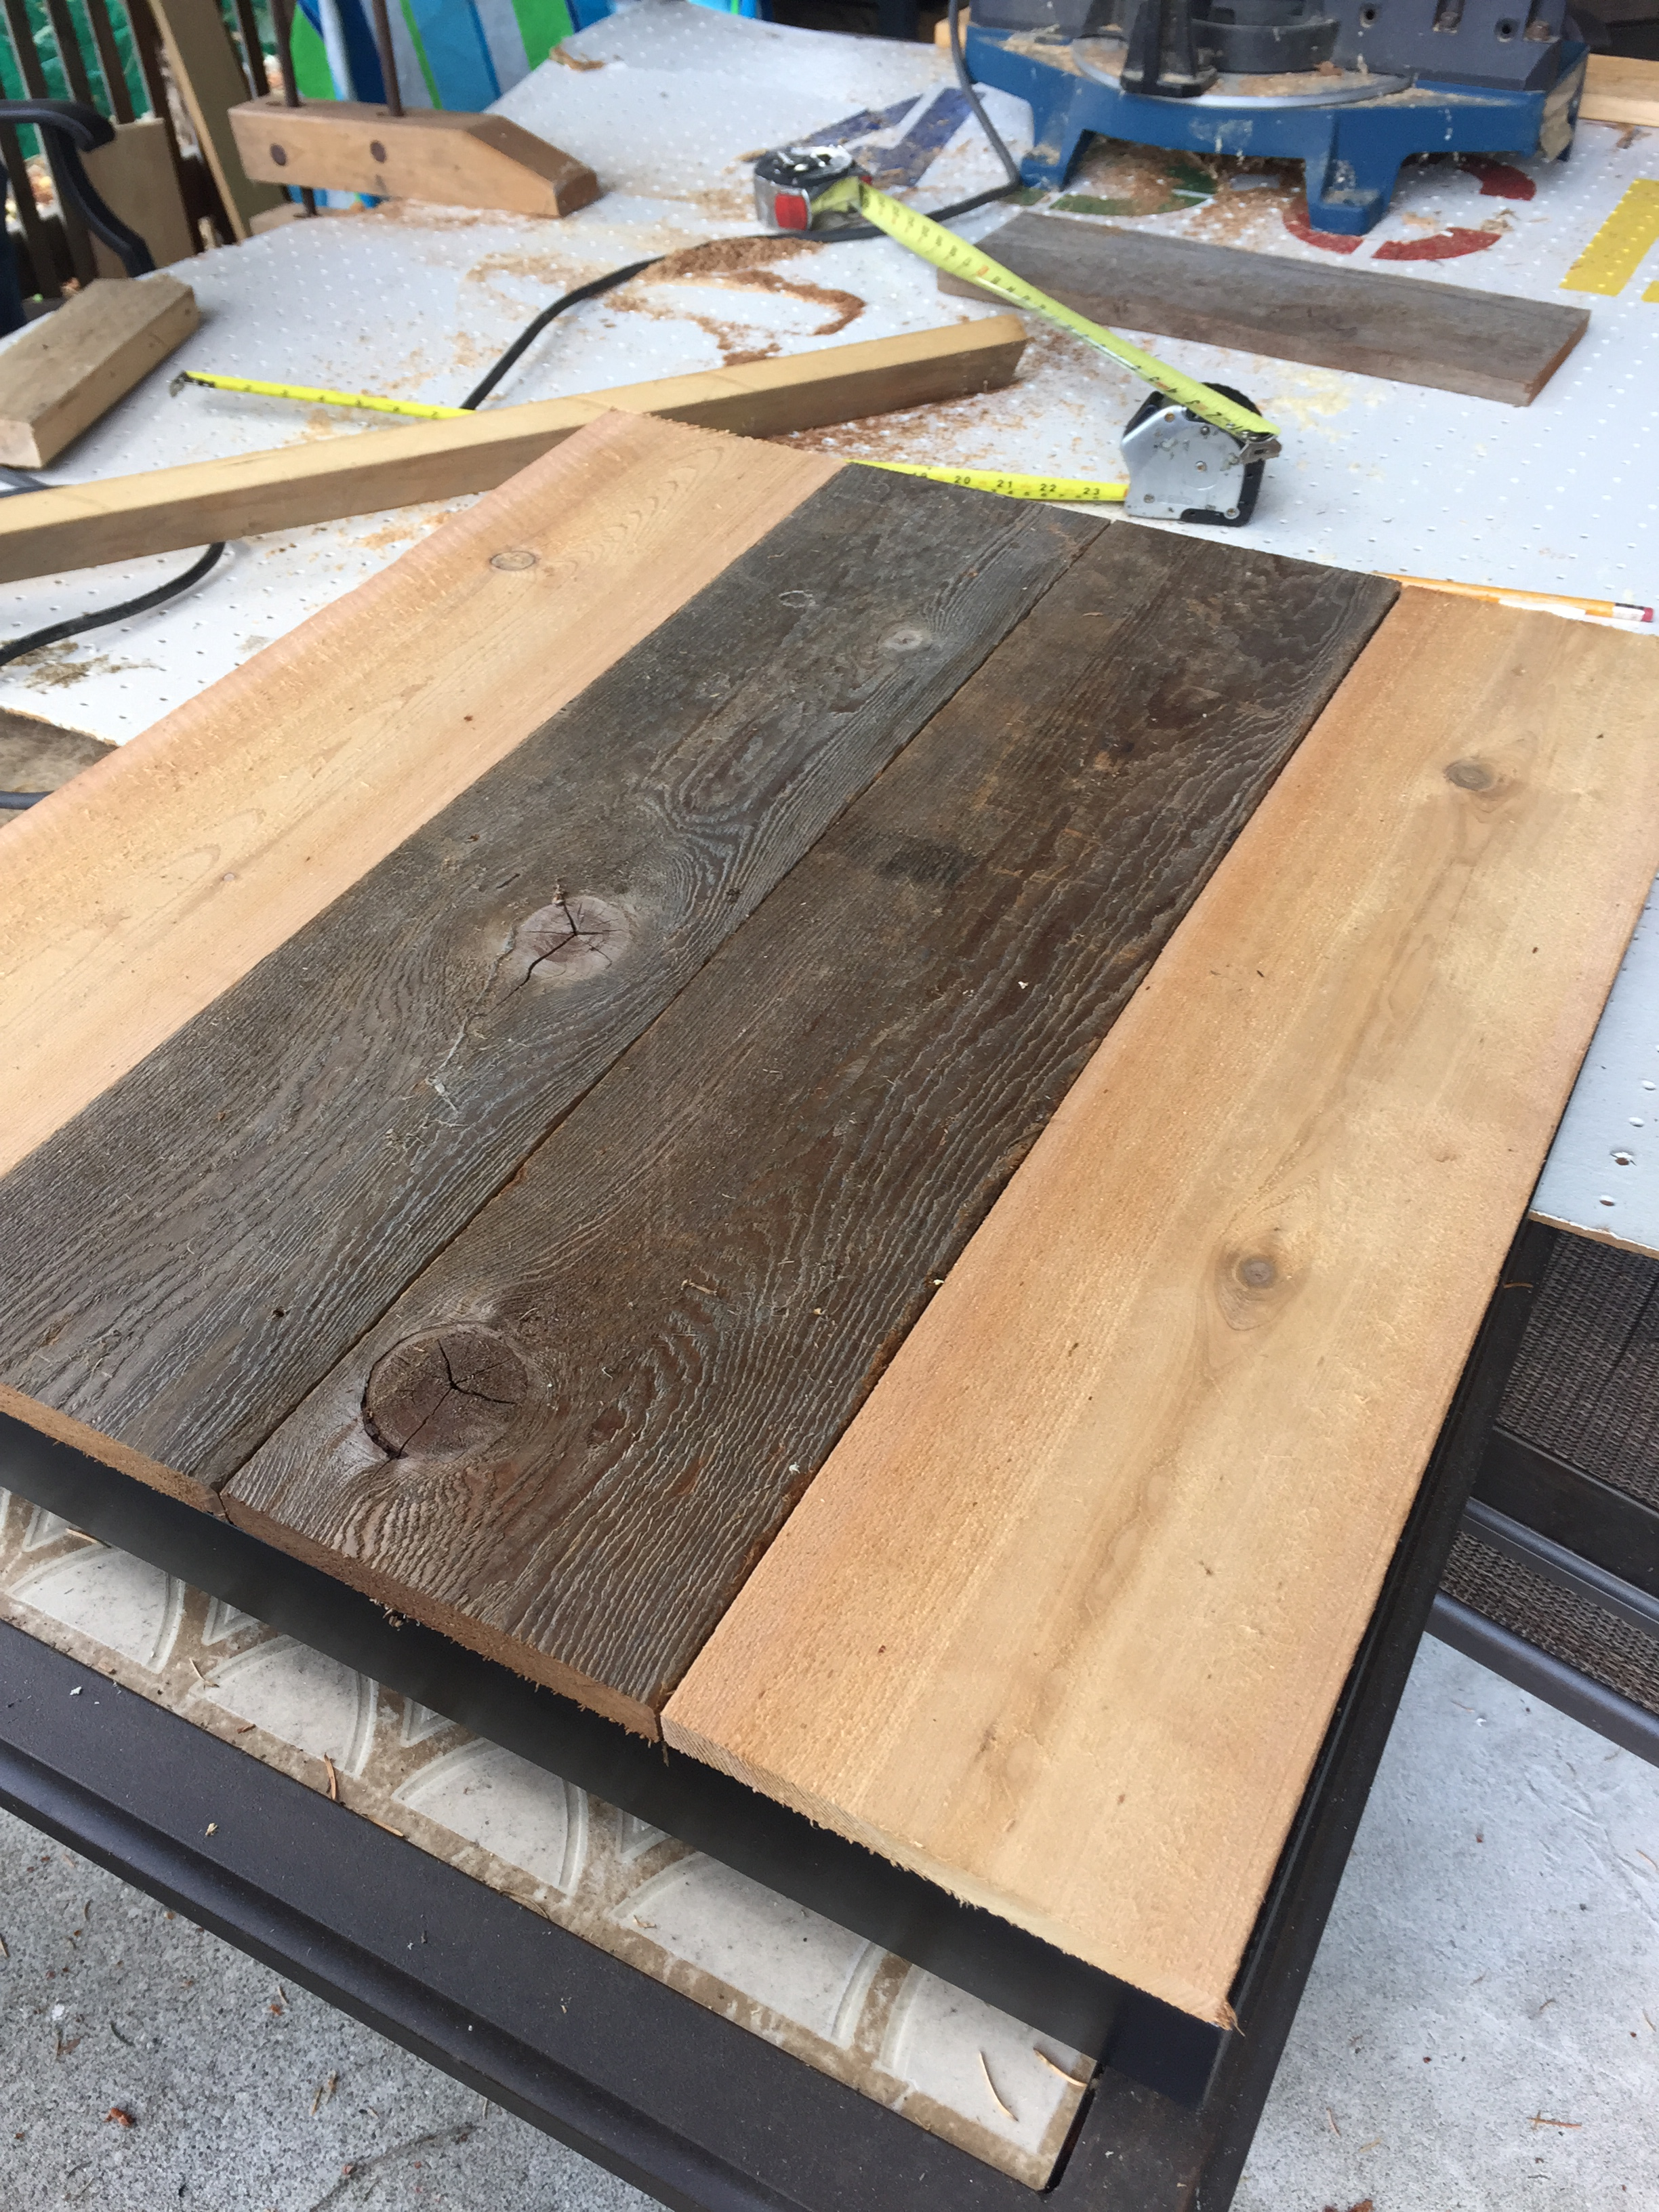 For This Project, I Found Two Boards From My Dadu0027s Wood Pile That My Dad  Identified As Fence Boards. They Measure 5.5 Inches Wide. I Used My Dadu0027s  Table Saw ...